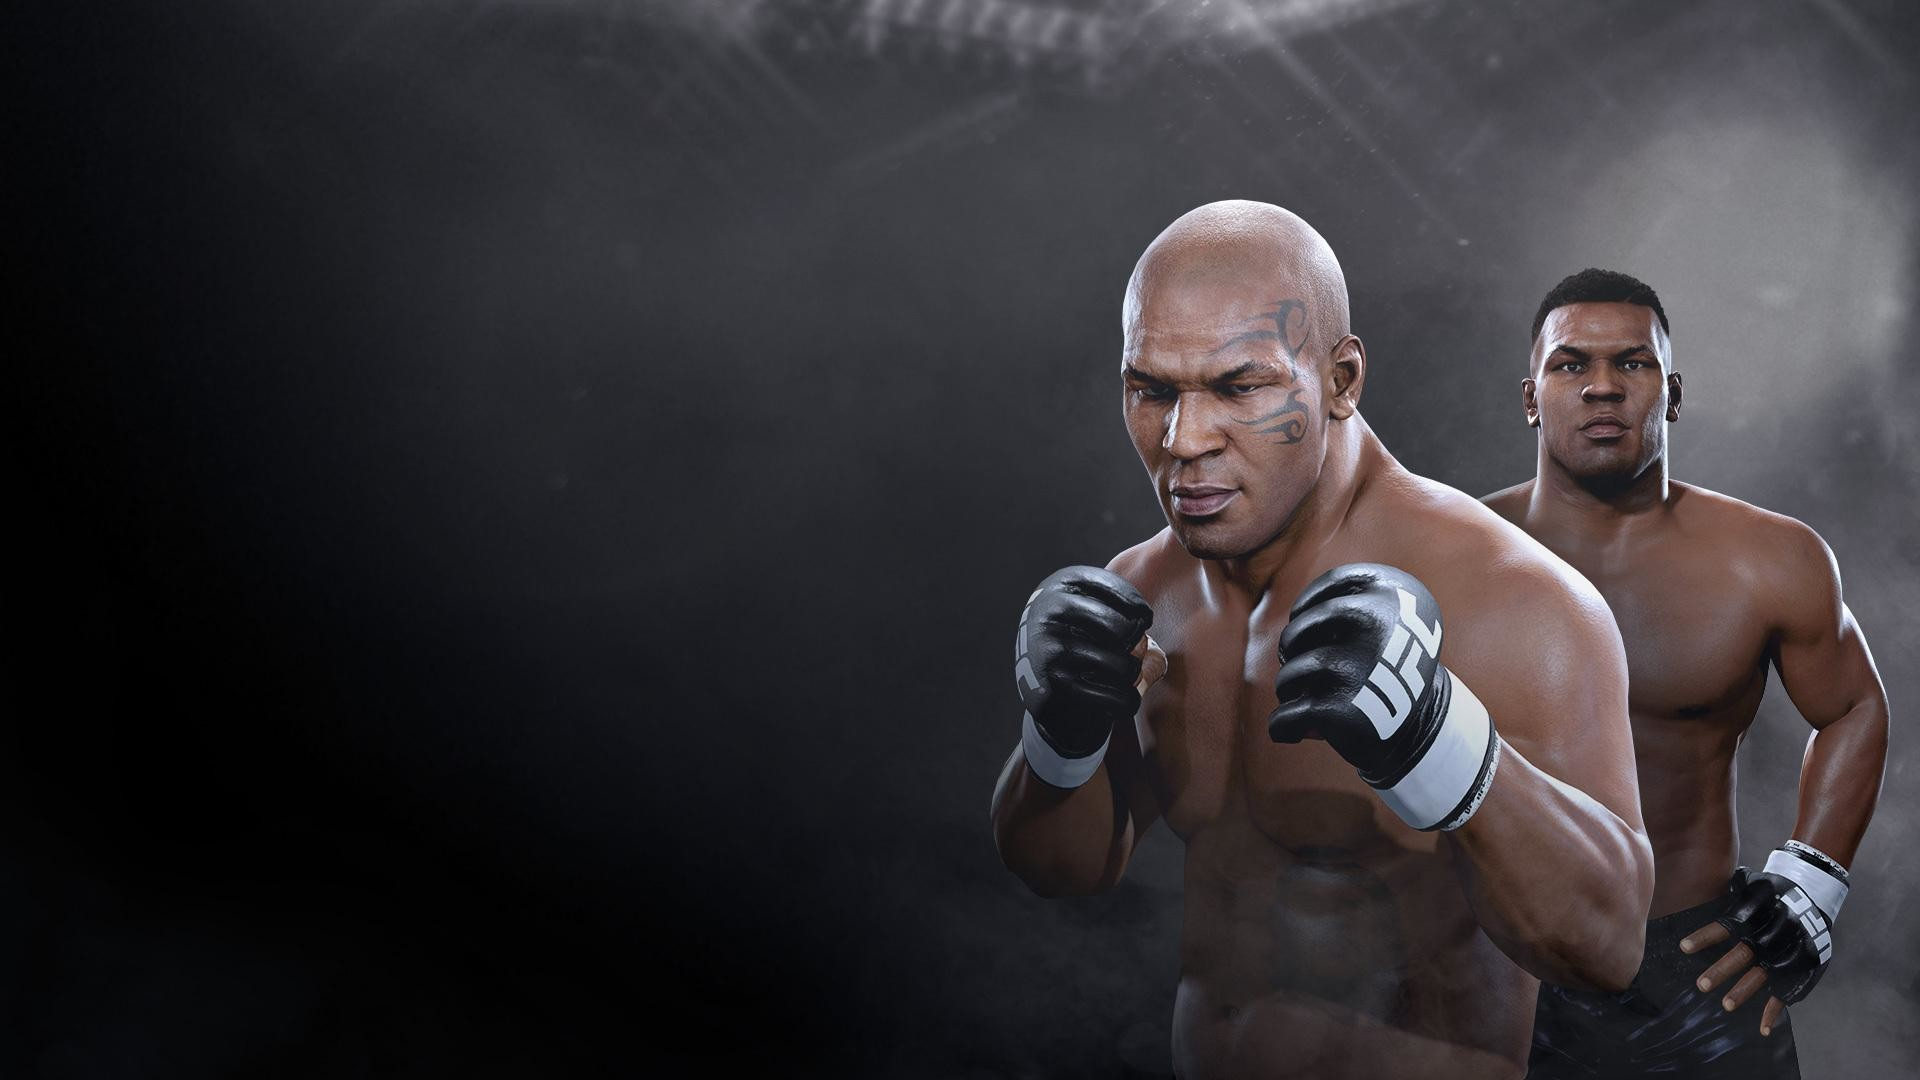 1920x1080 'UFC 2': New Gameplay Trailer Reveals 'Iron' Mike Tyson Offer For Pre-Order  Customers | Player.One